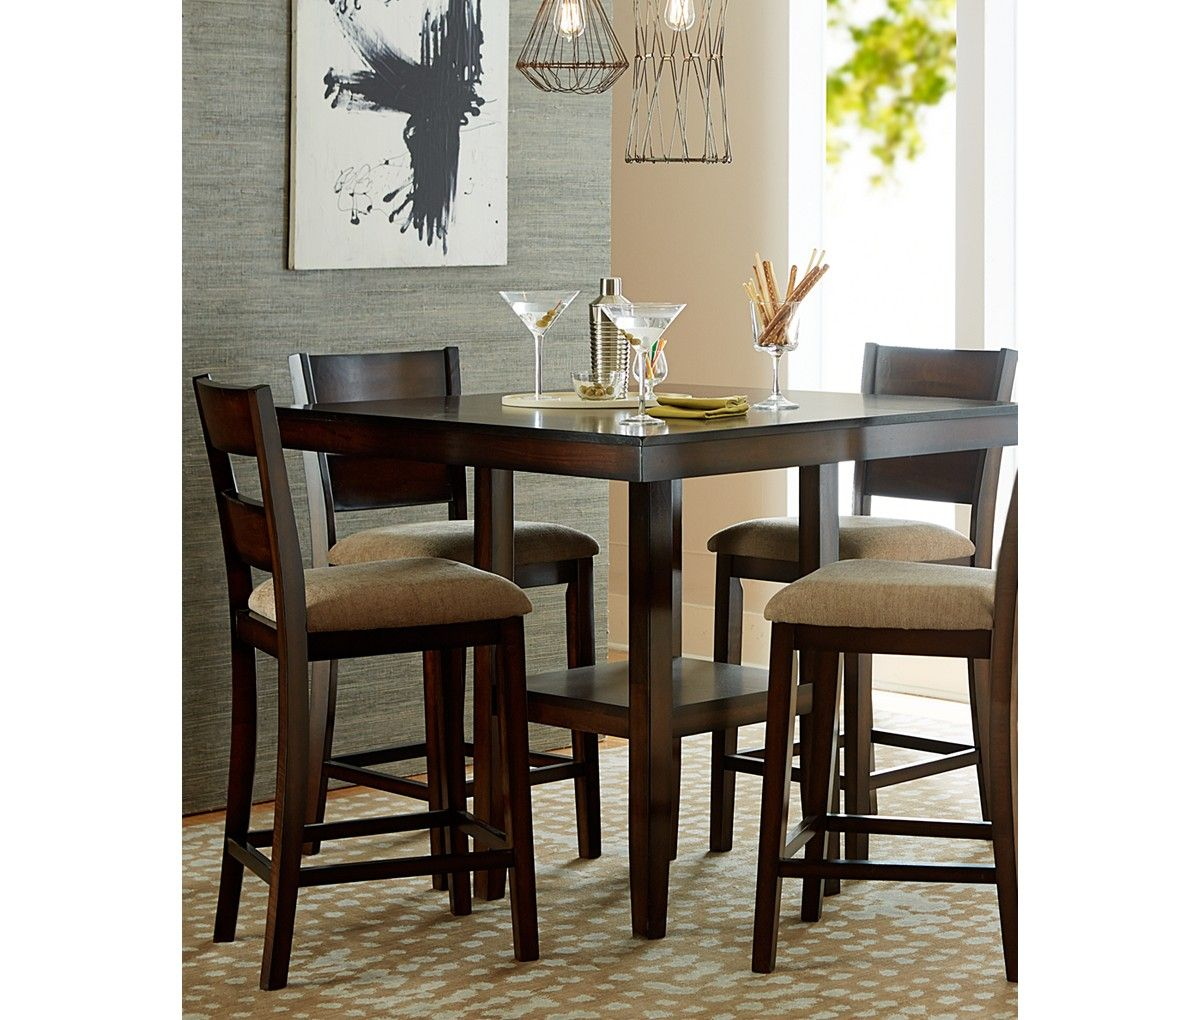 Macys Counter Height Dining Set